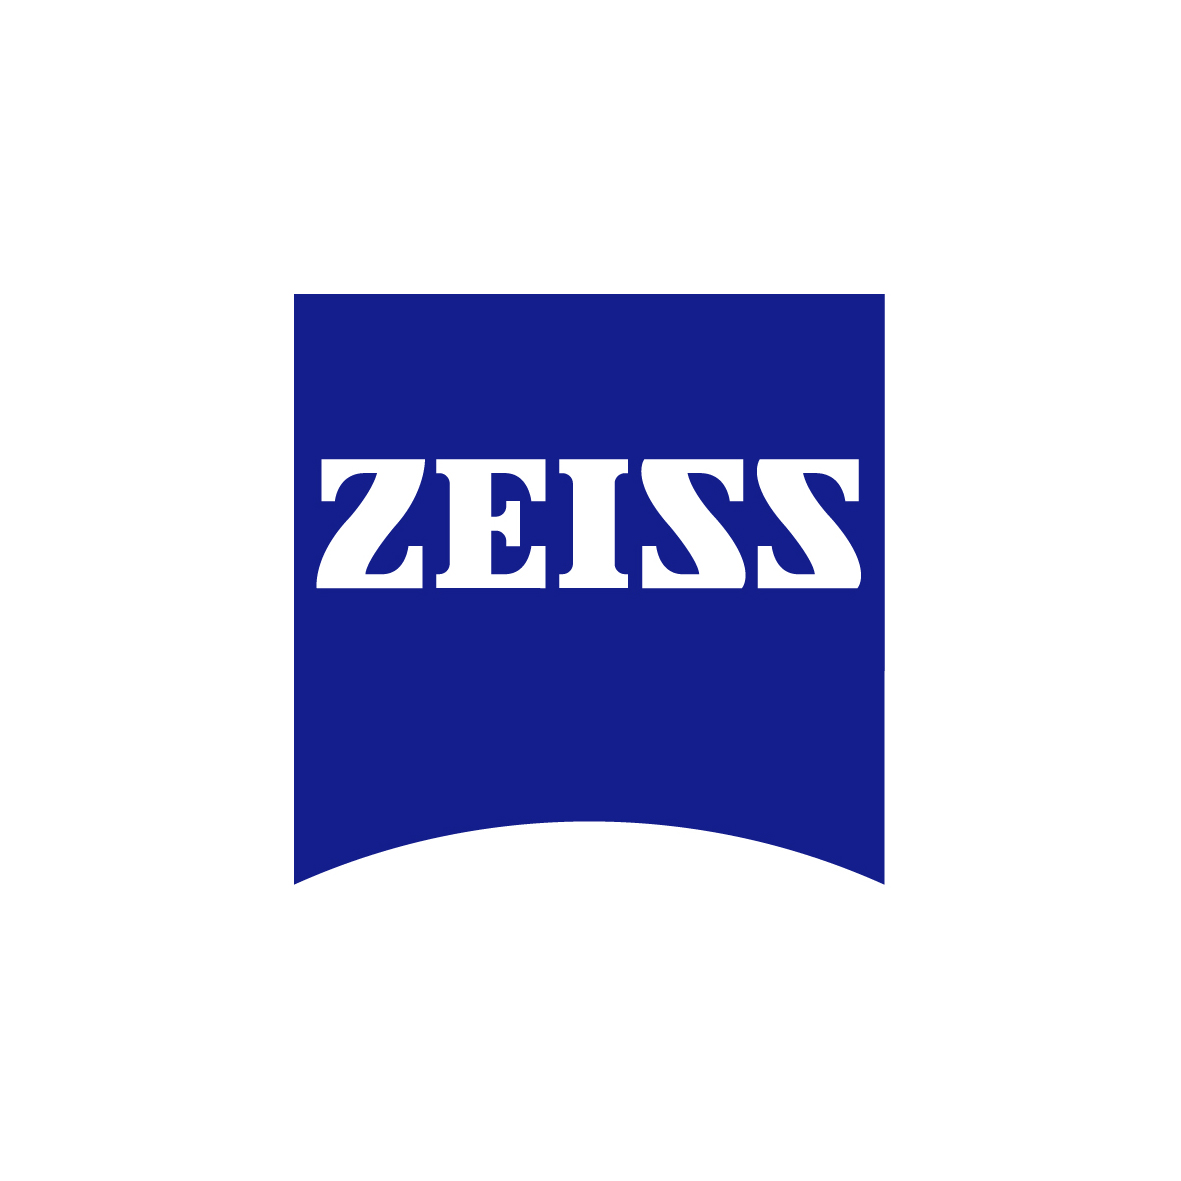 ZEISS Mexico